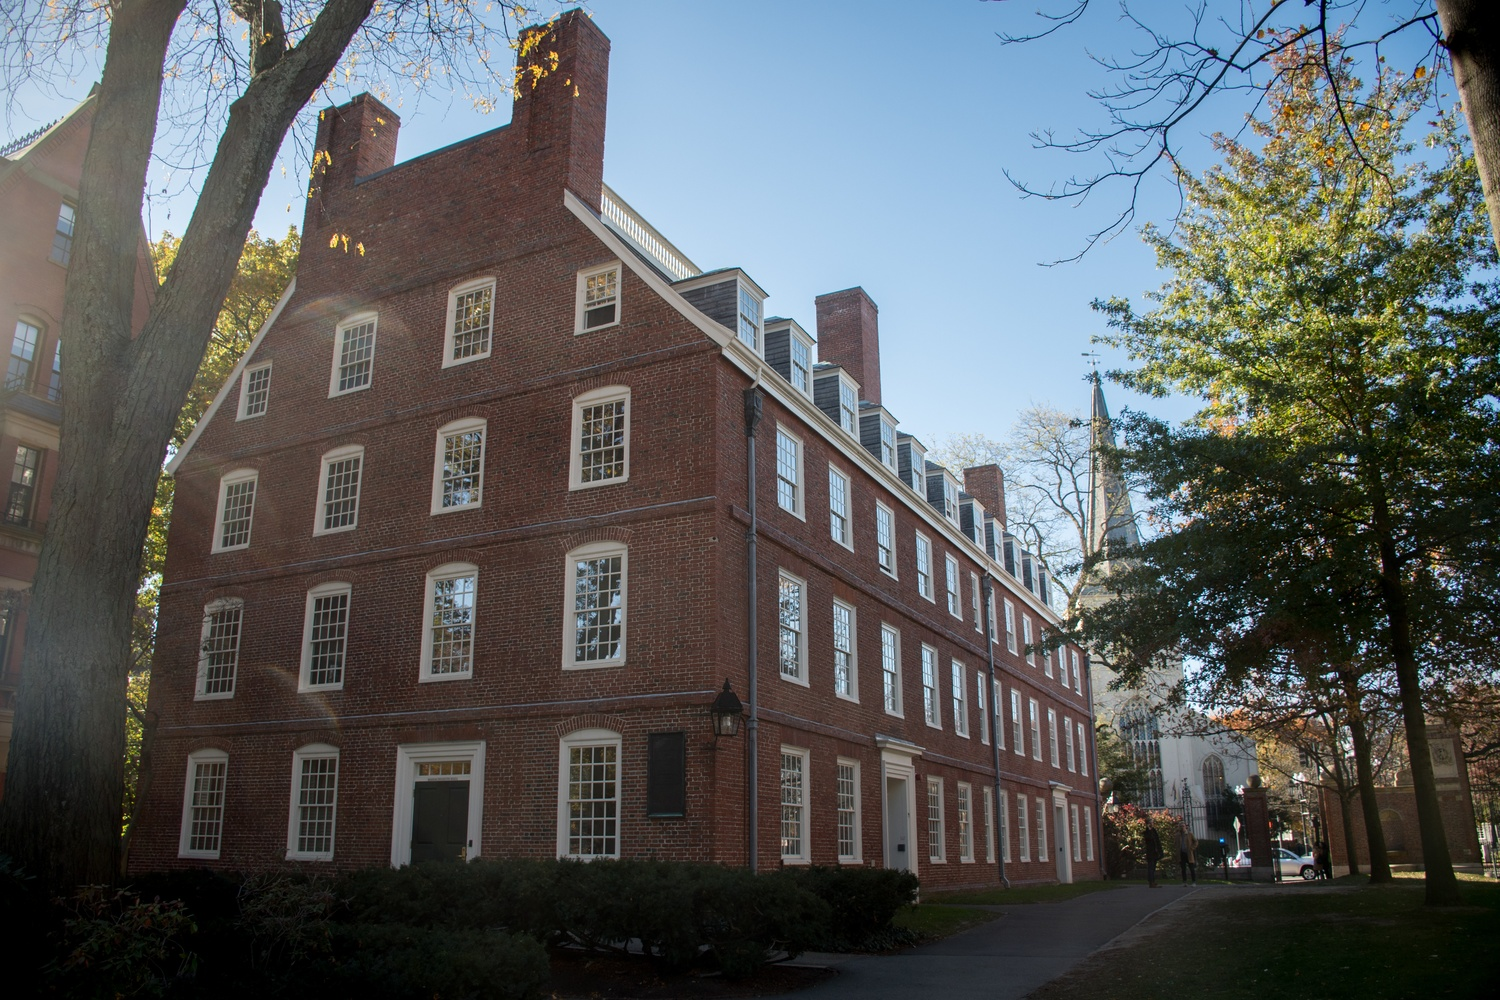 Massachusetts Hall, an administrative building, is located in Harvard Yard.